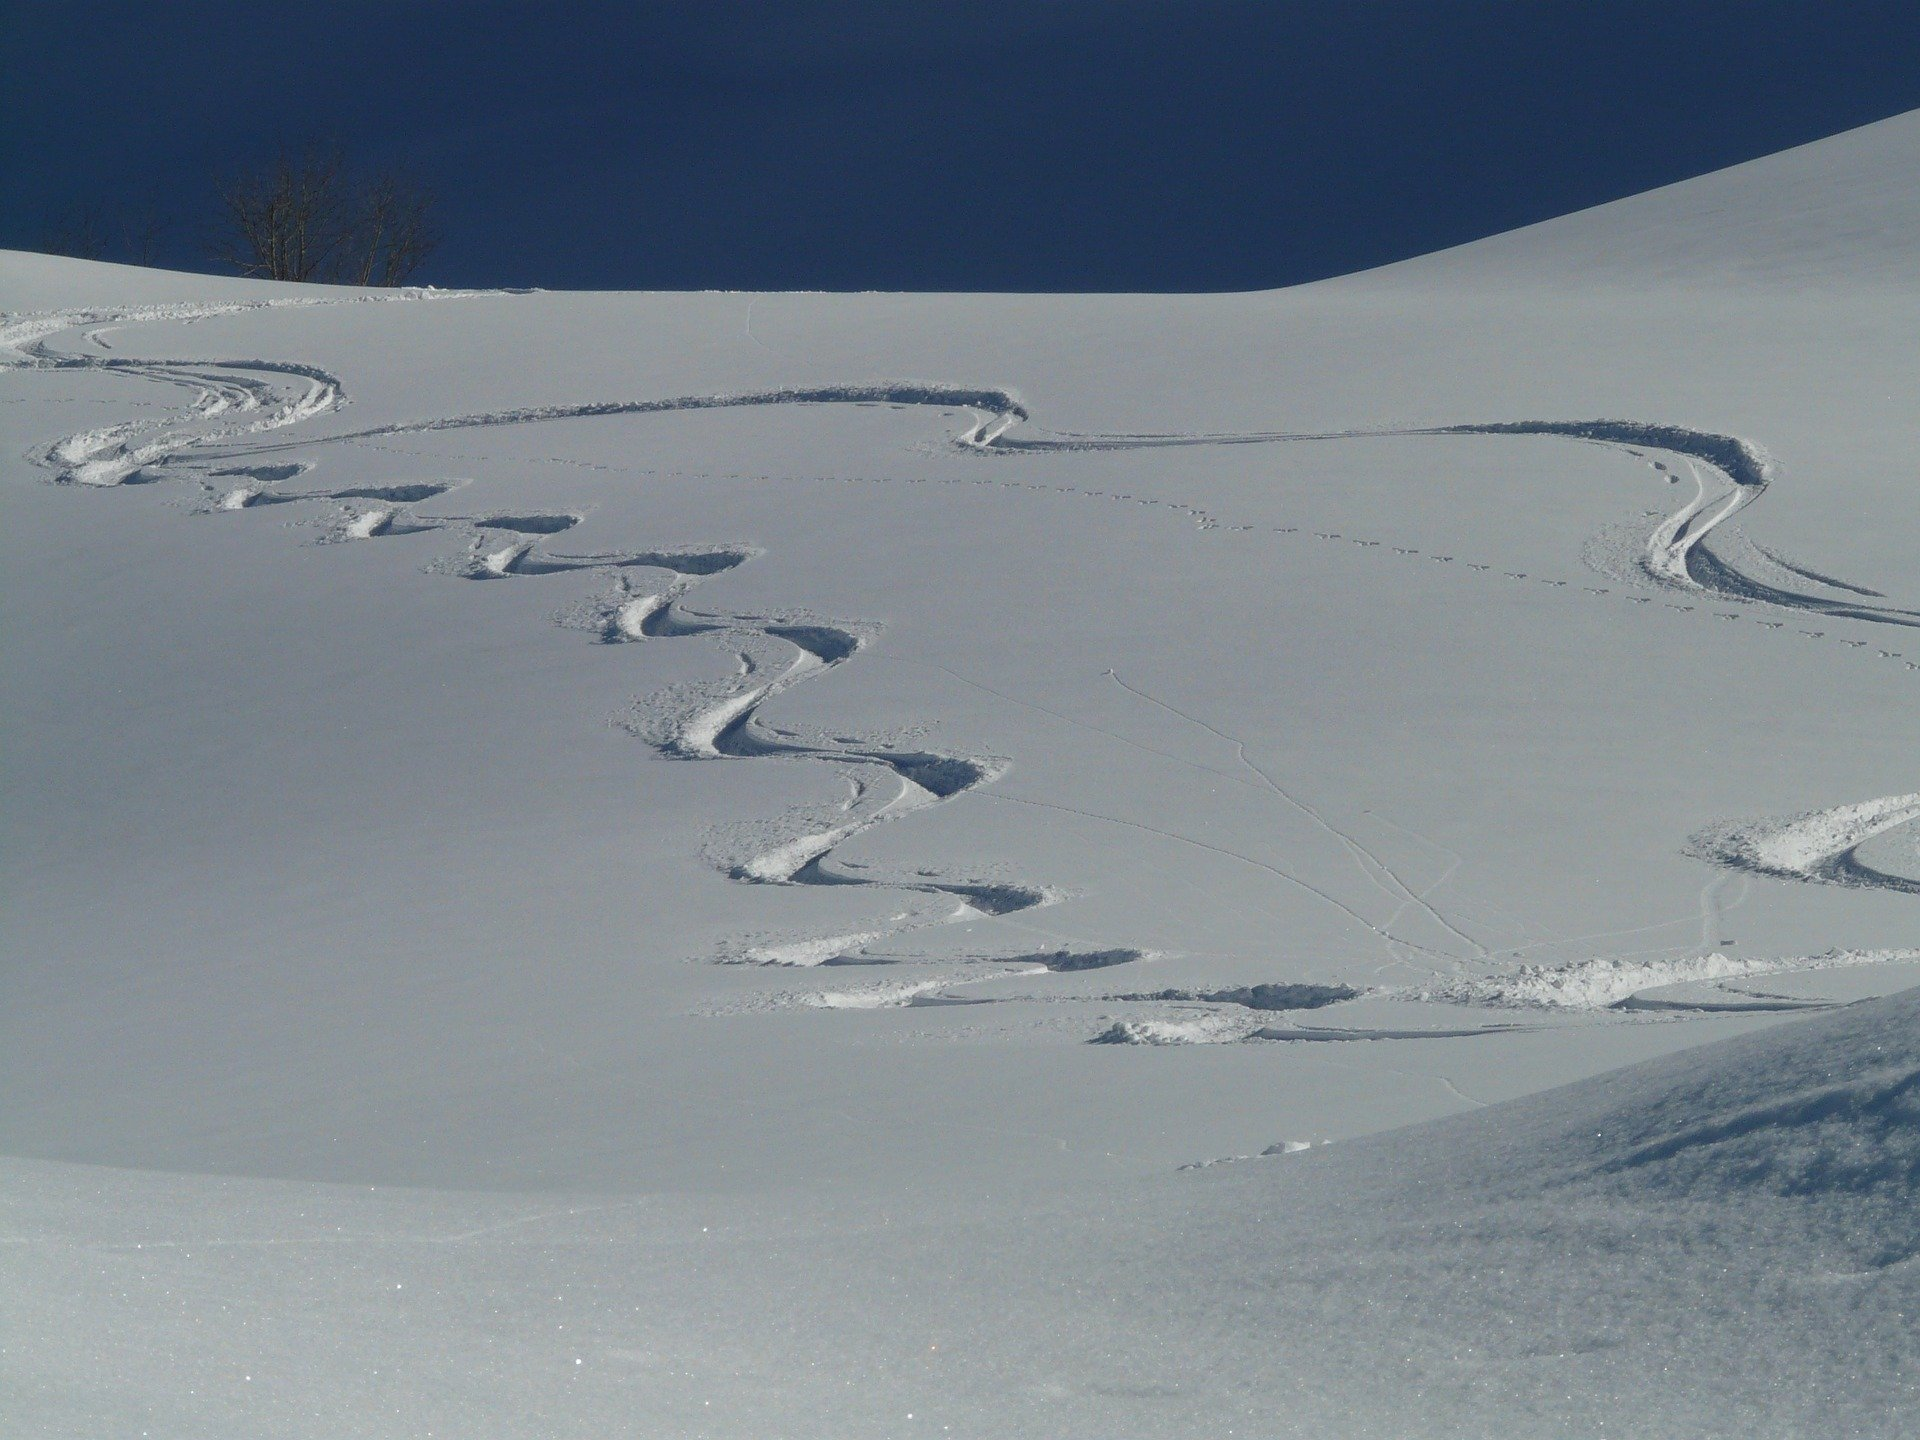 backcountry ski lines